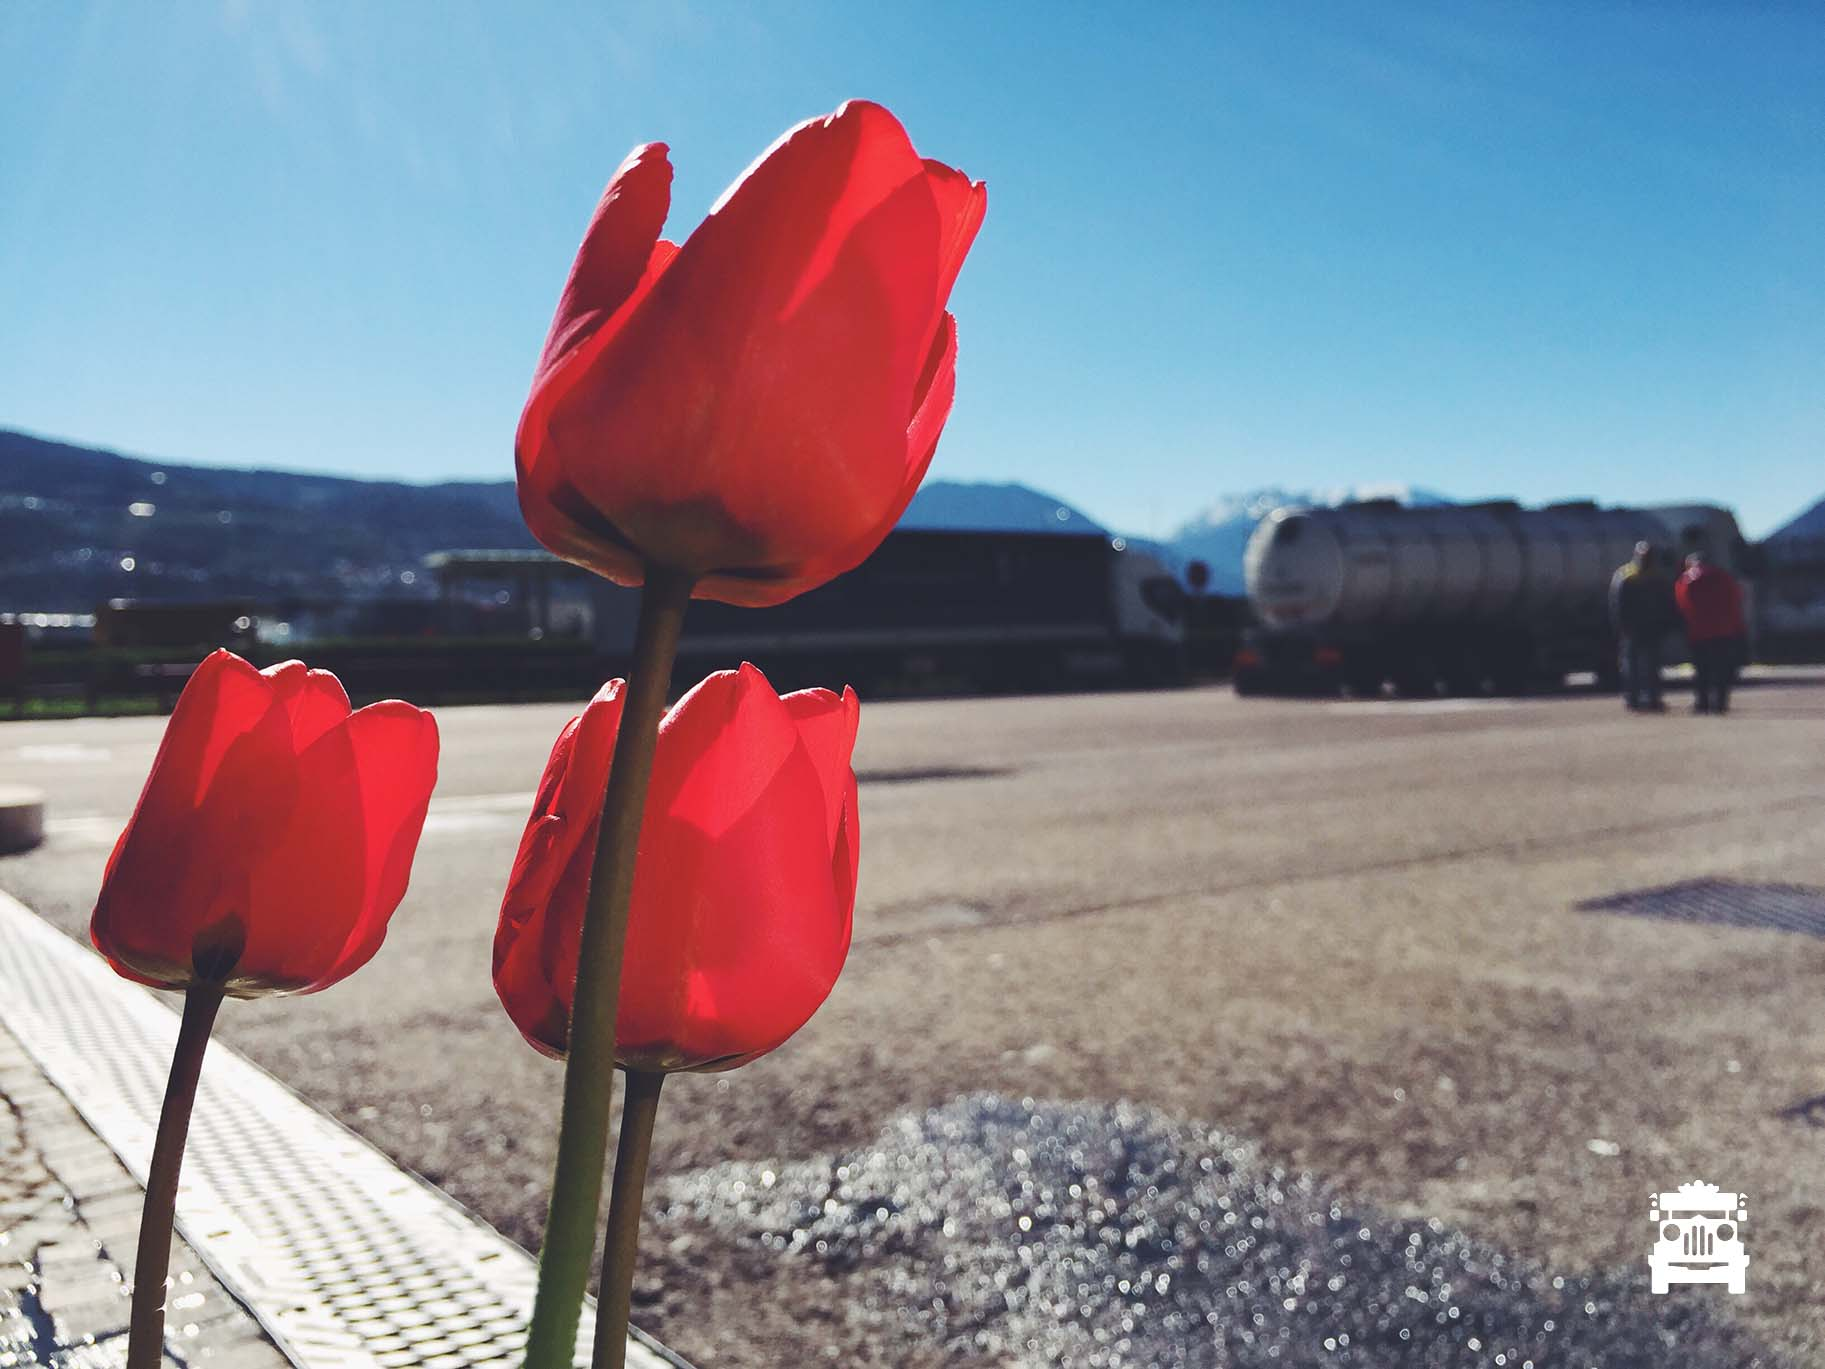 Tulips at the service station